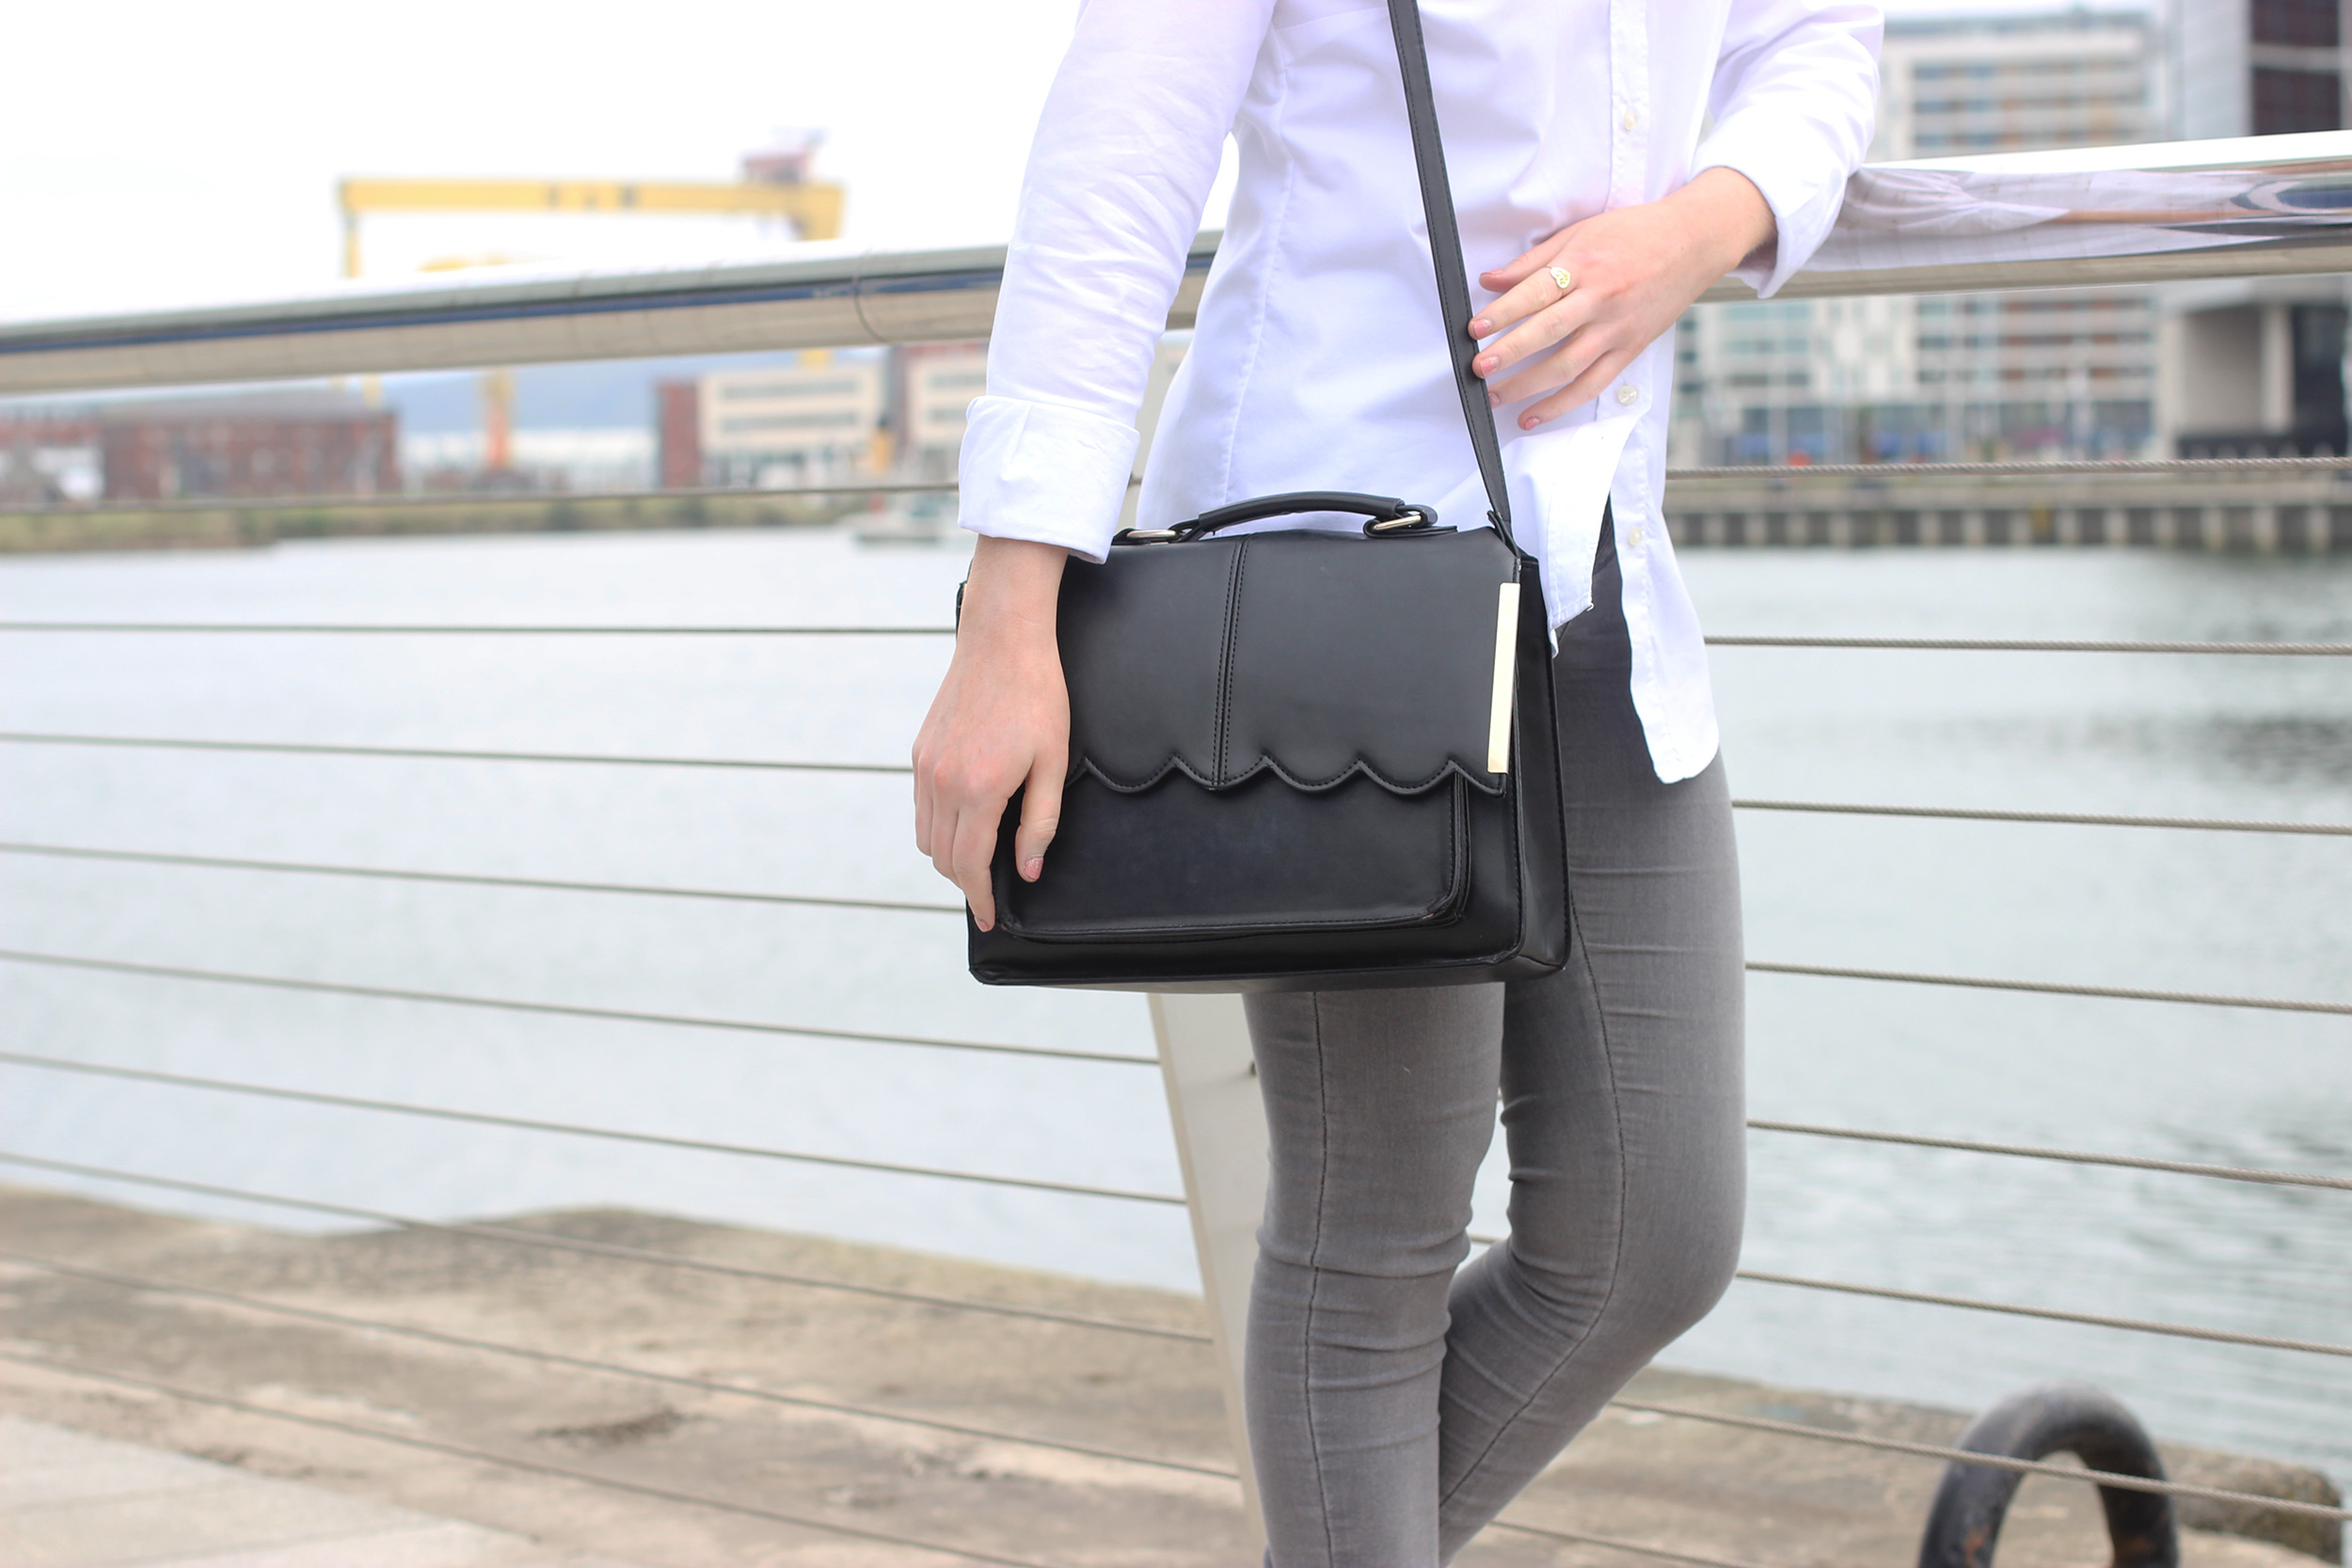 gant-white-shirt,-asos-scallop-edge-handbag